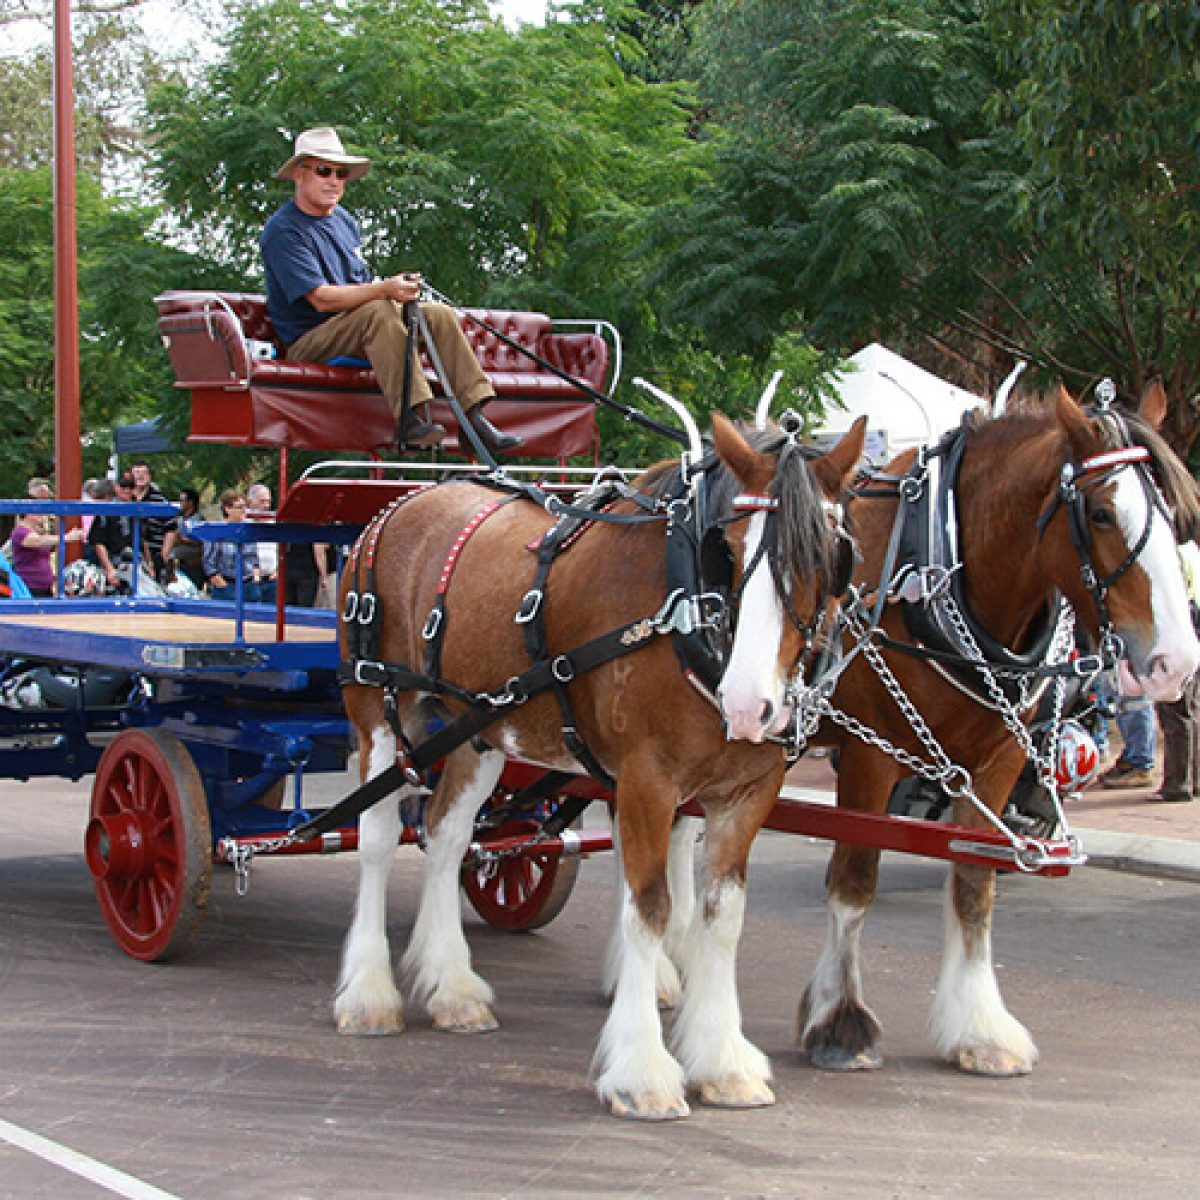 Clydesdale cart rides